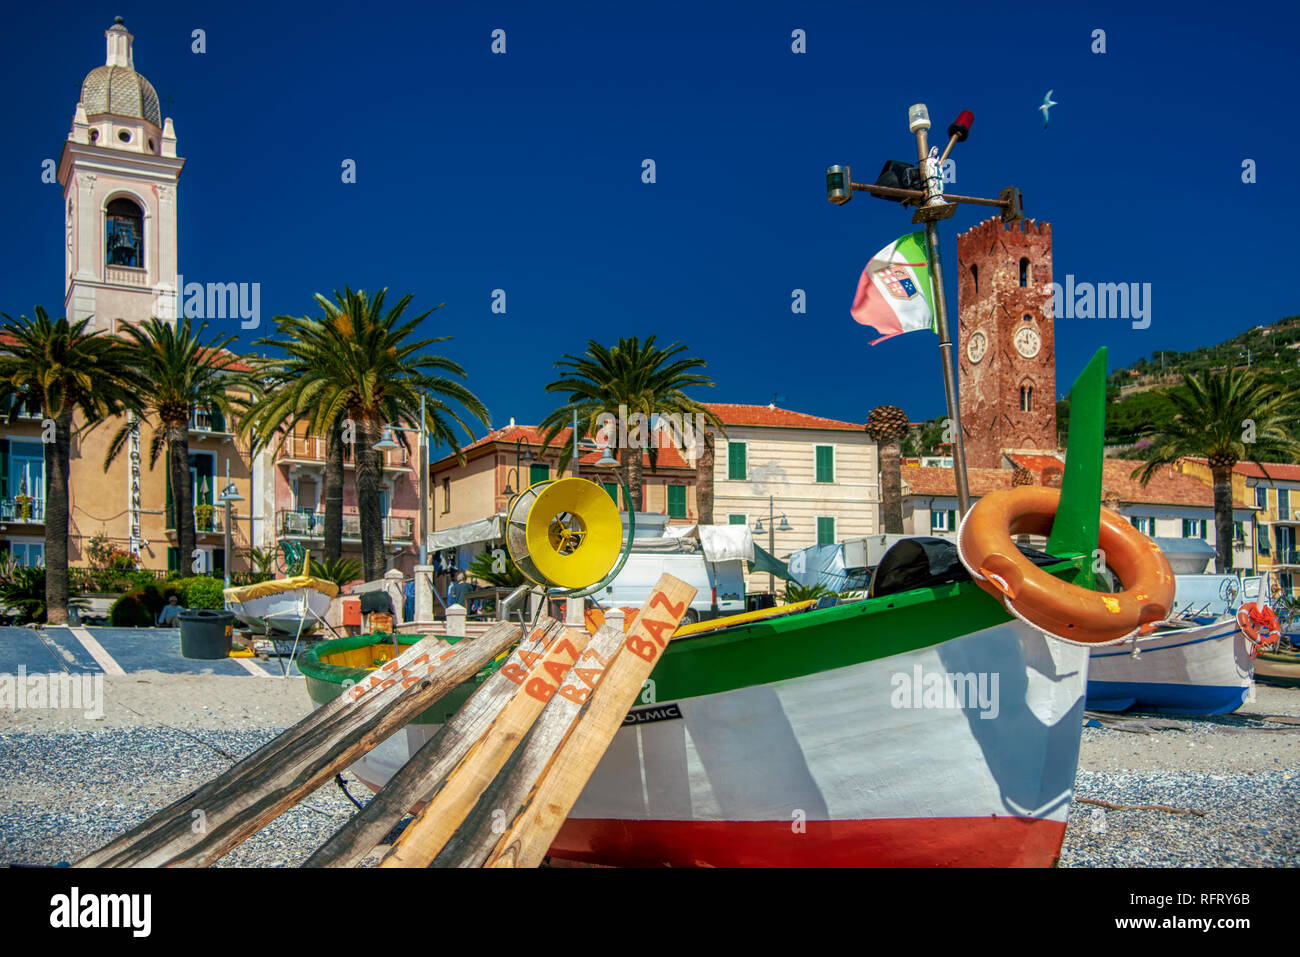 Old colorful wooden fishing boats on the beach, Noli, Italy with historic medieval waterfront buildings behind and tropical palm trees on the promenad - Stock Image